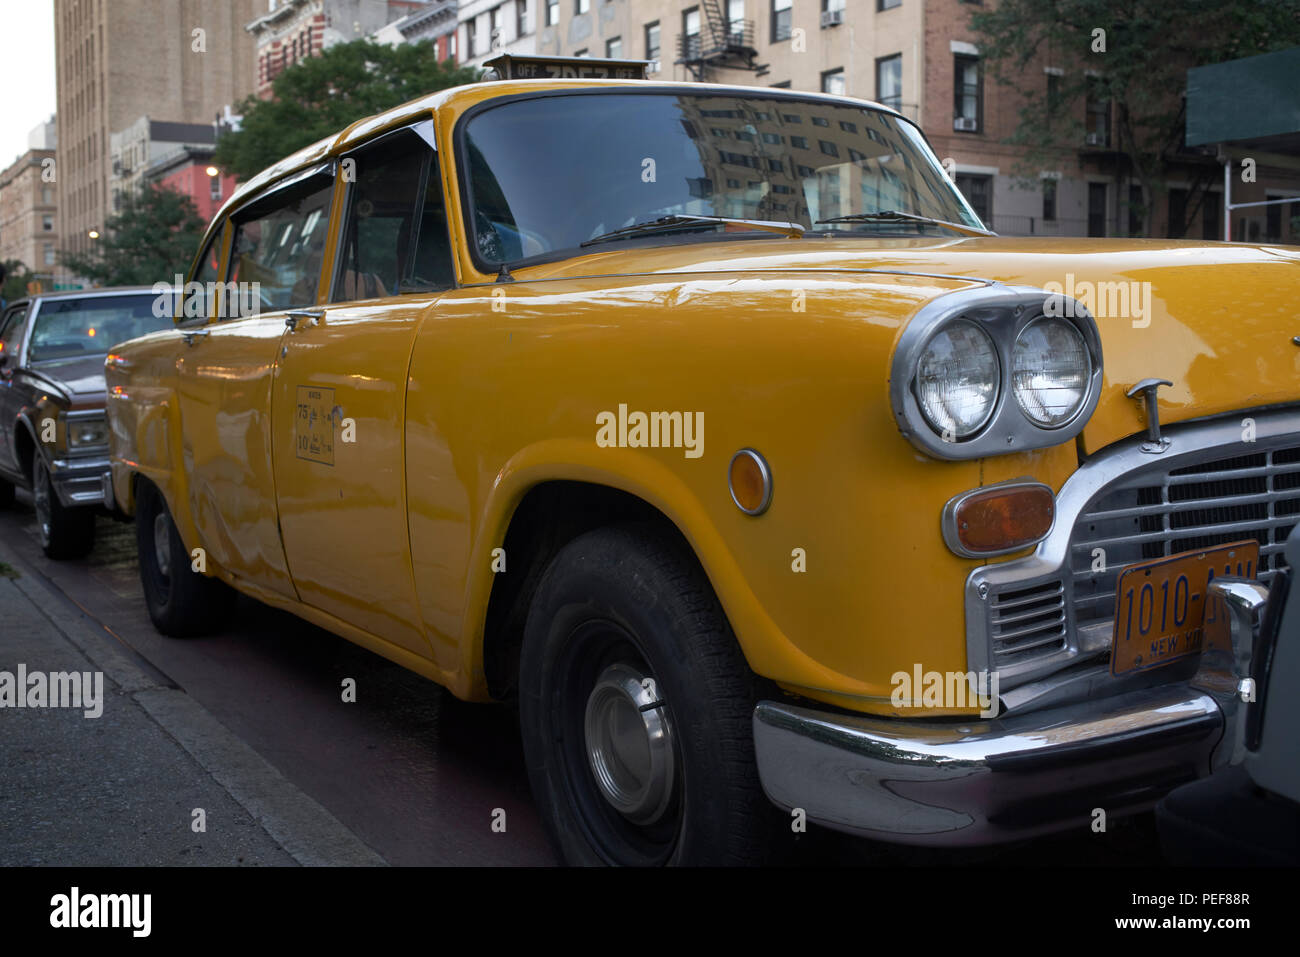 Front of a vintage American Checker taxicab in New York City Stock Photo